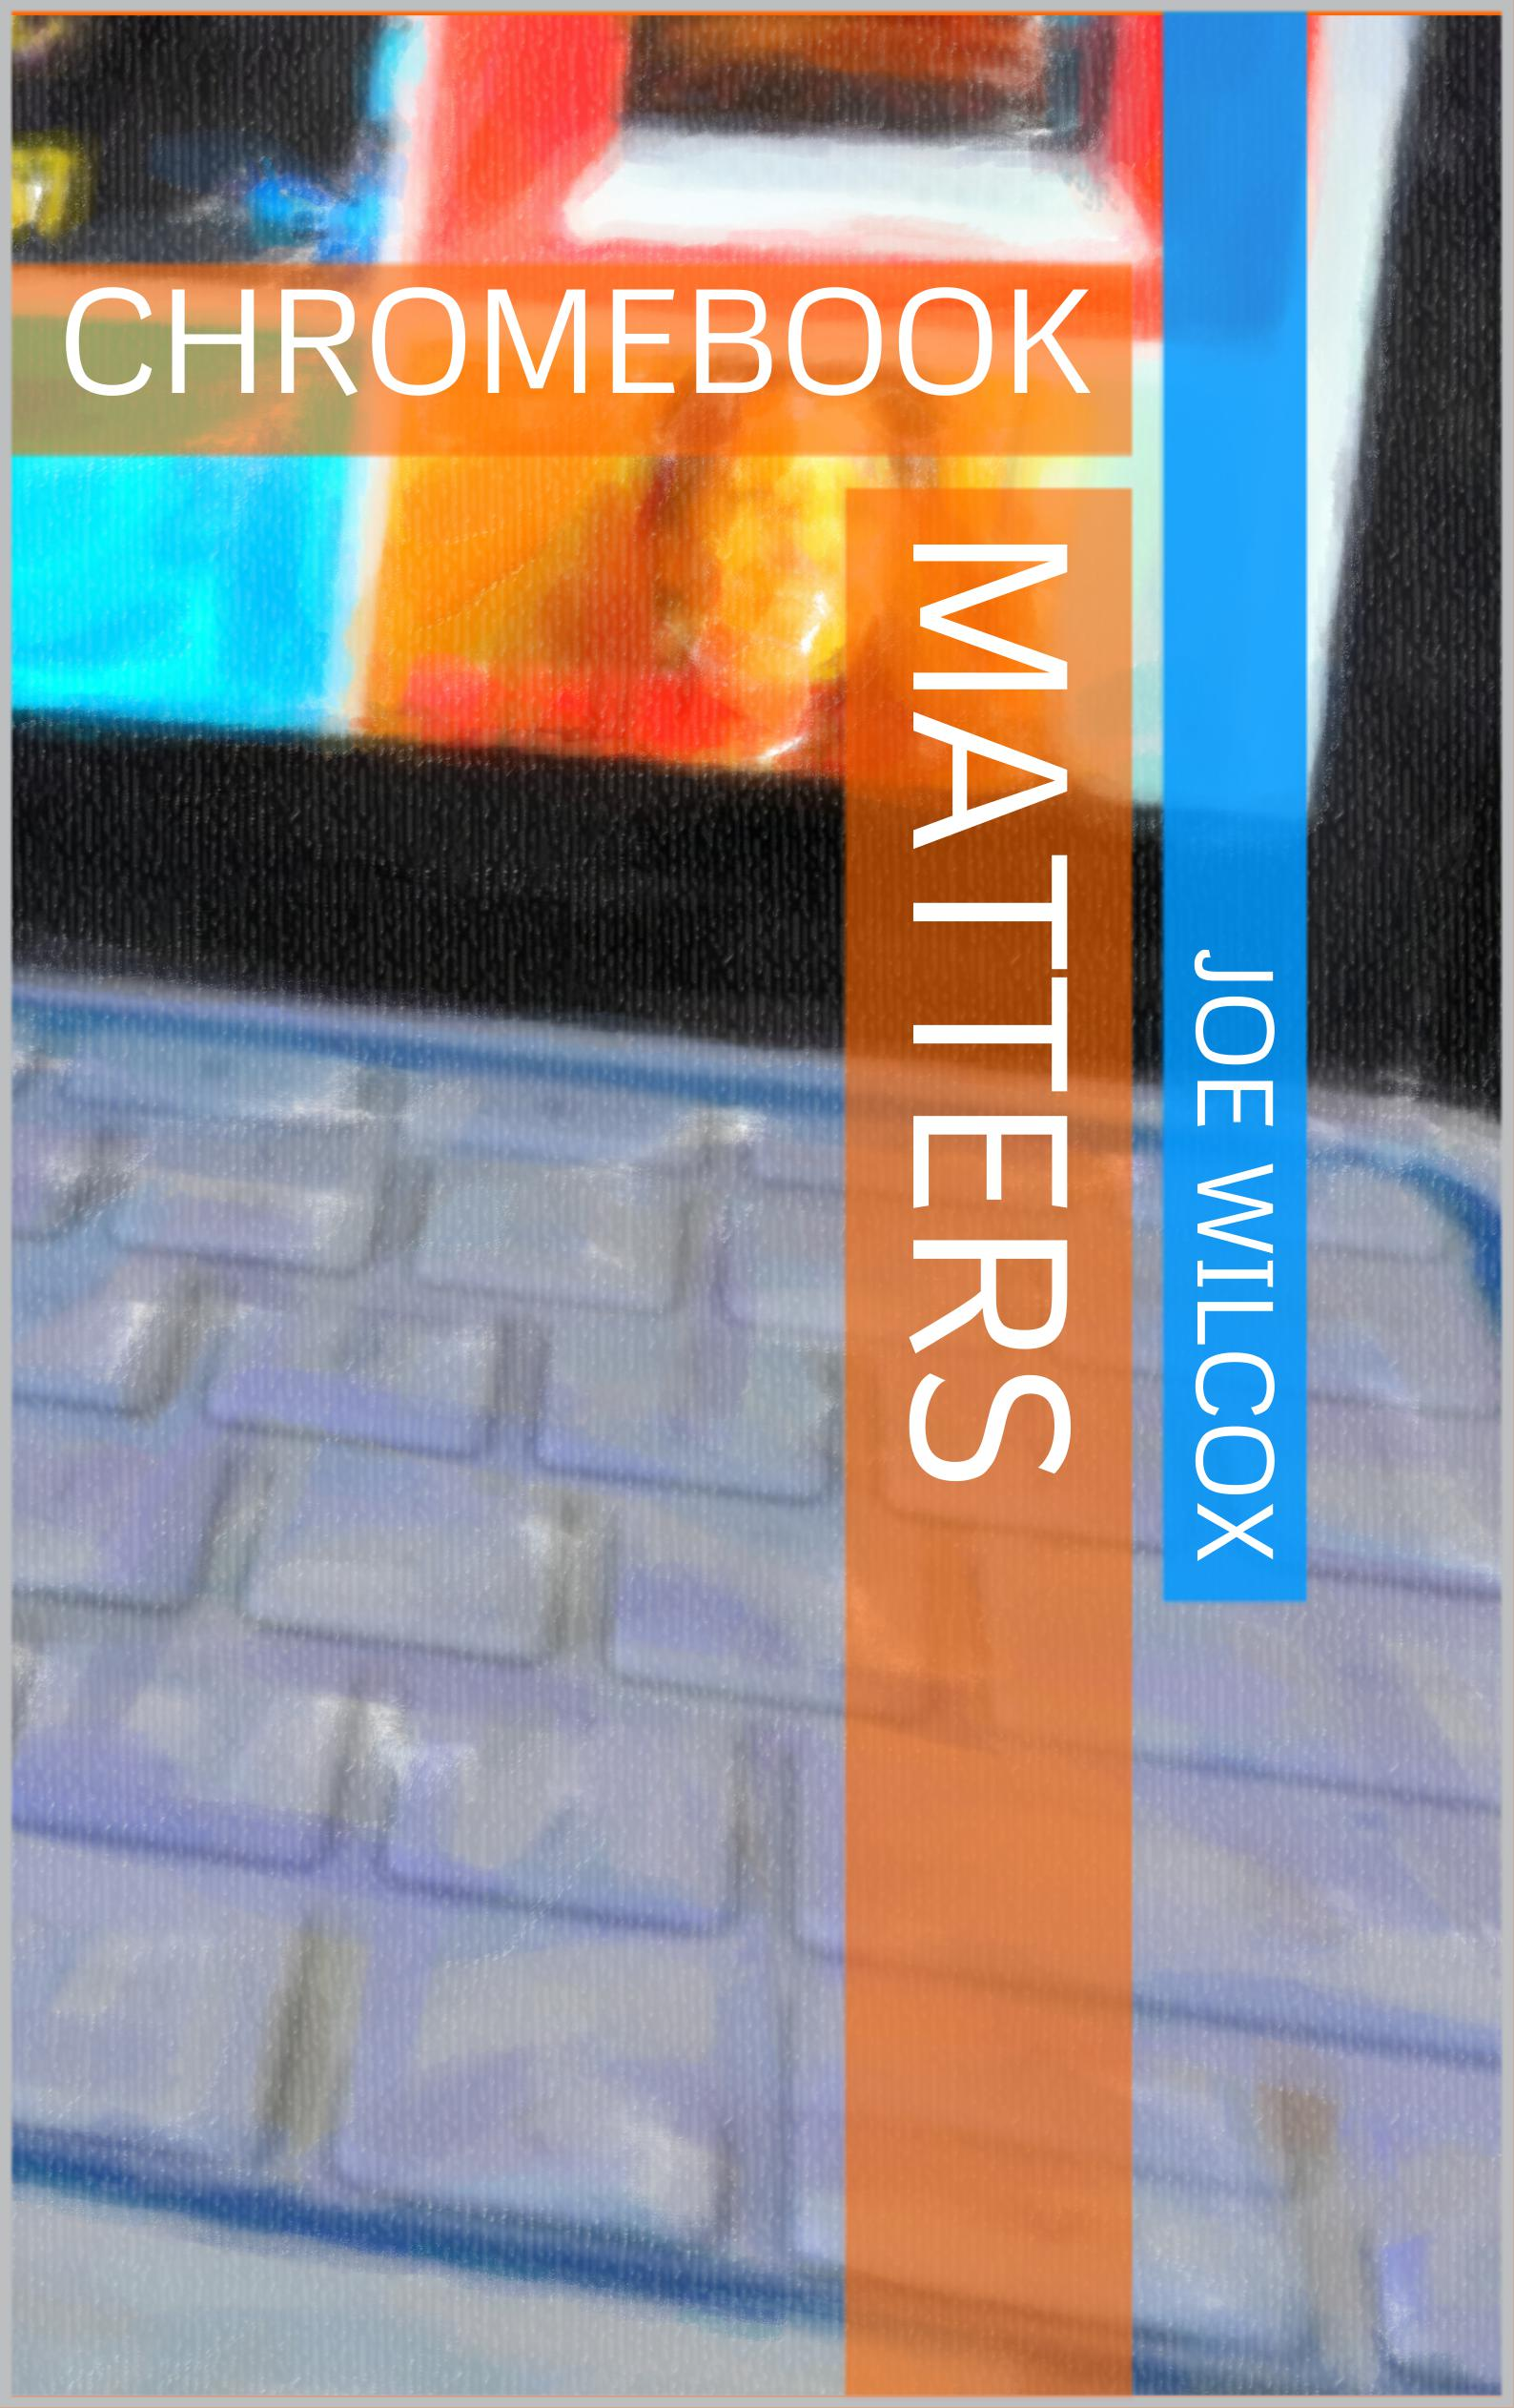 Ebooks page 3 5 minutes with joe chromebook matters fandeluxe Choice Image